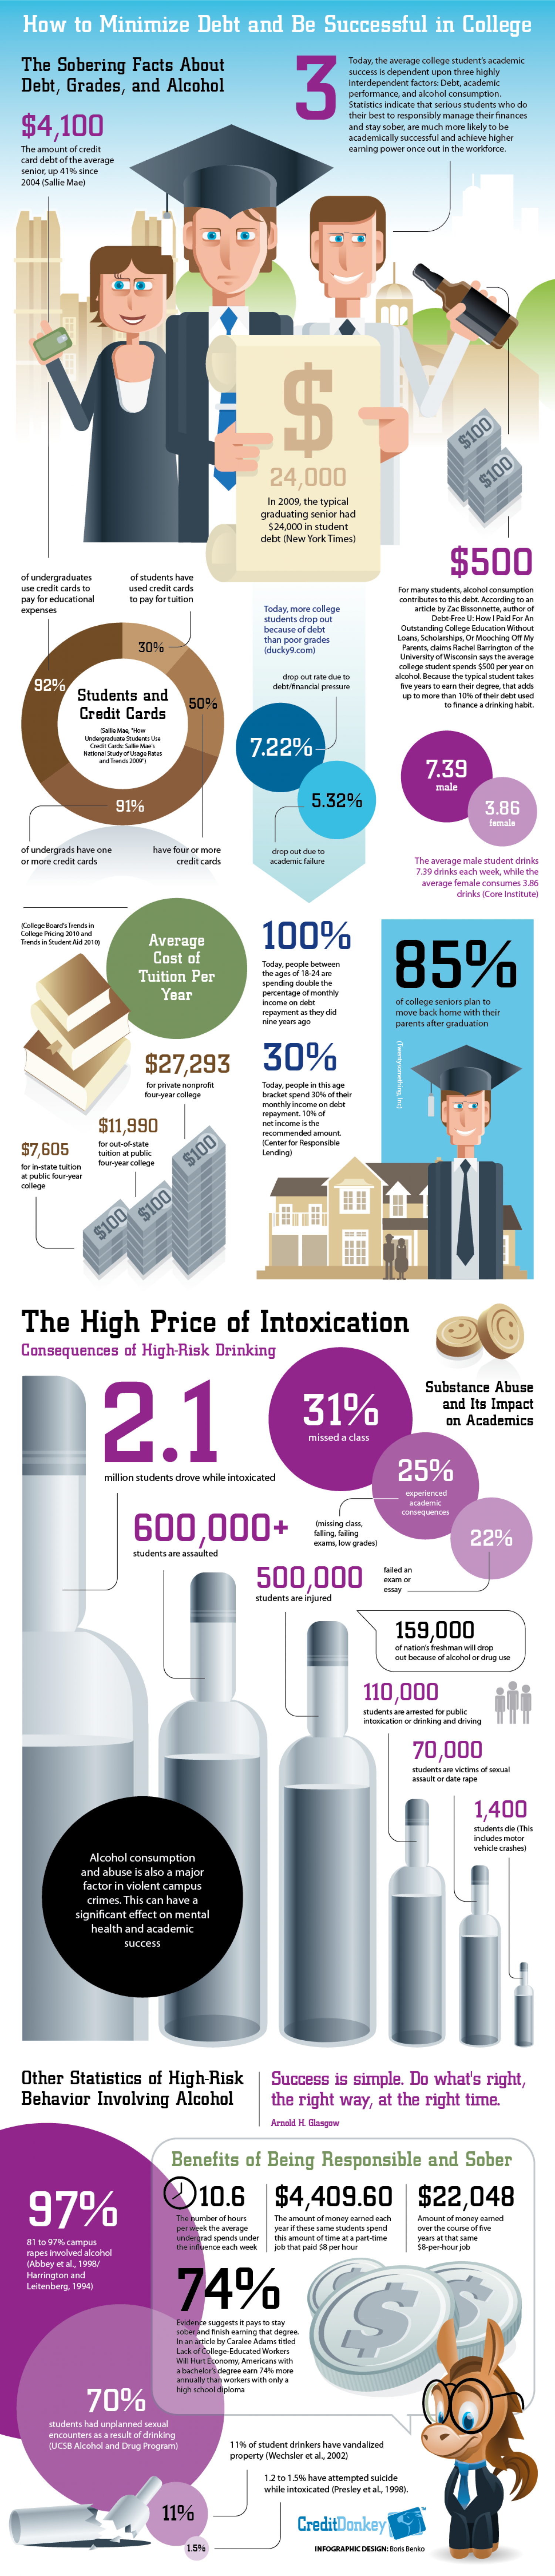 How to Minimize Debt and Be Successful in College  Infographic